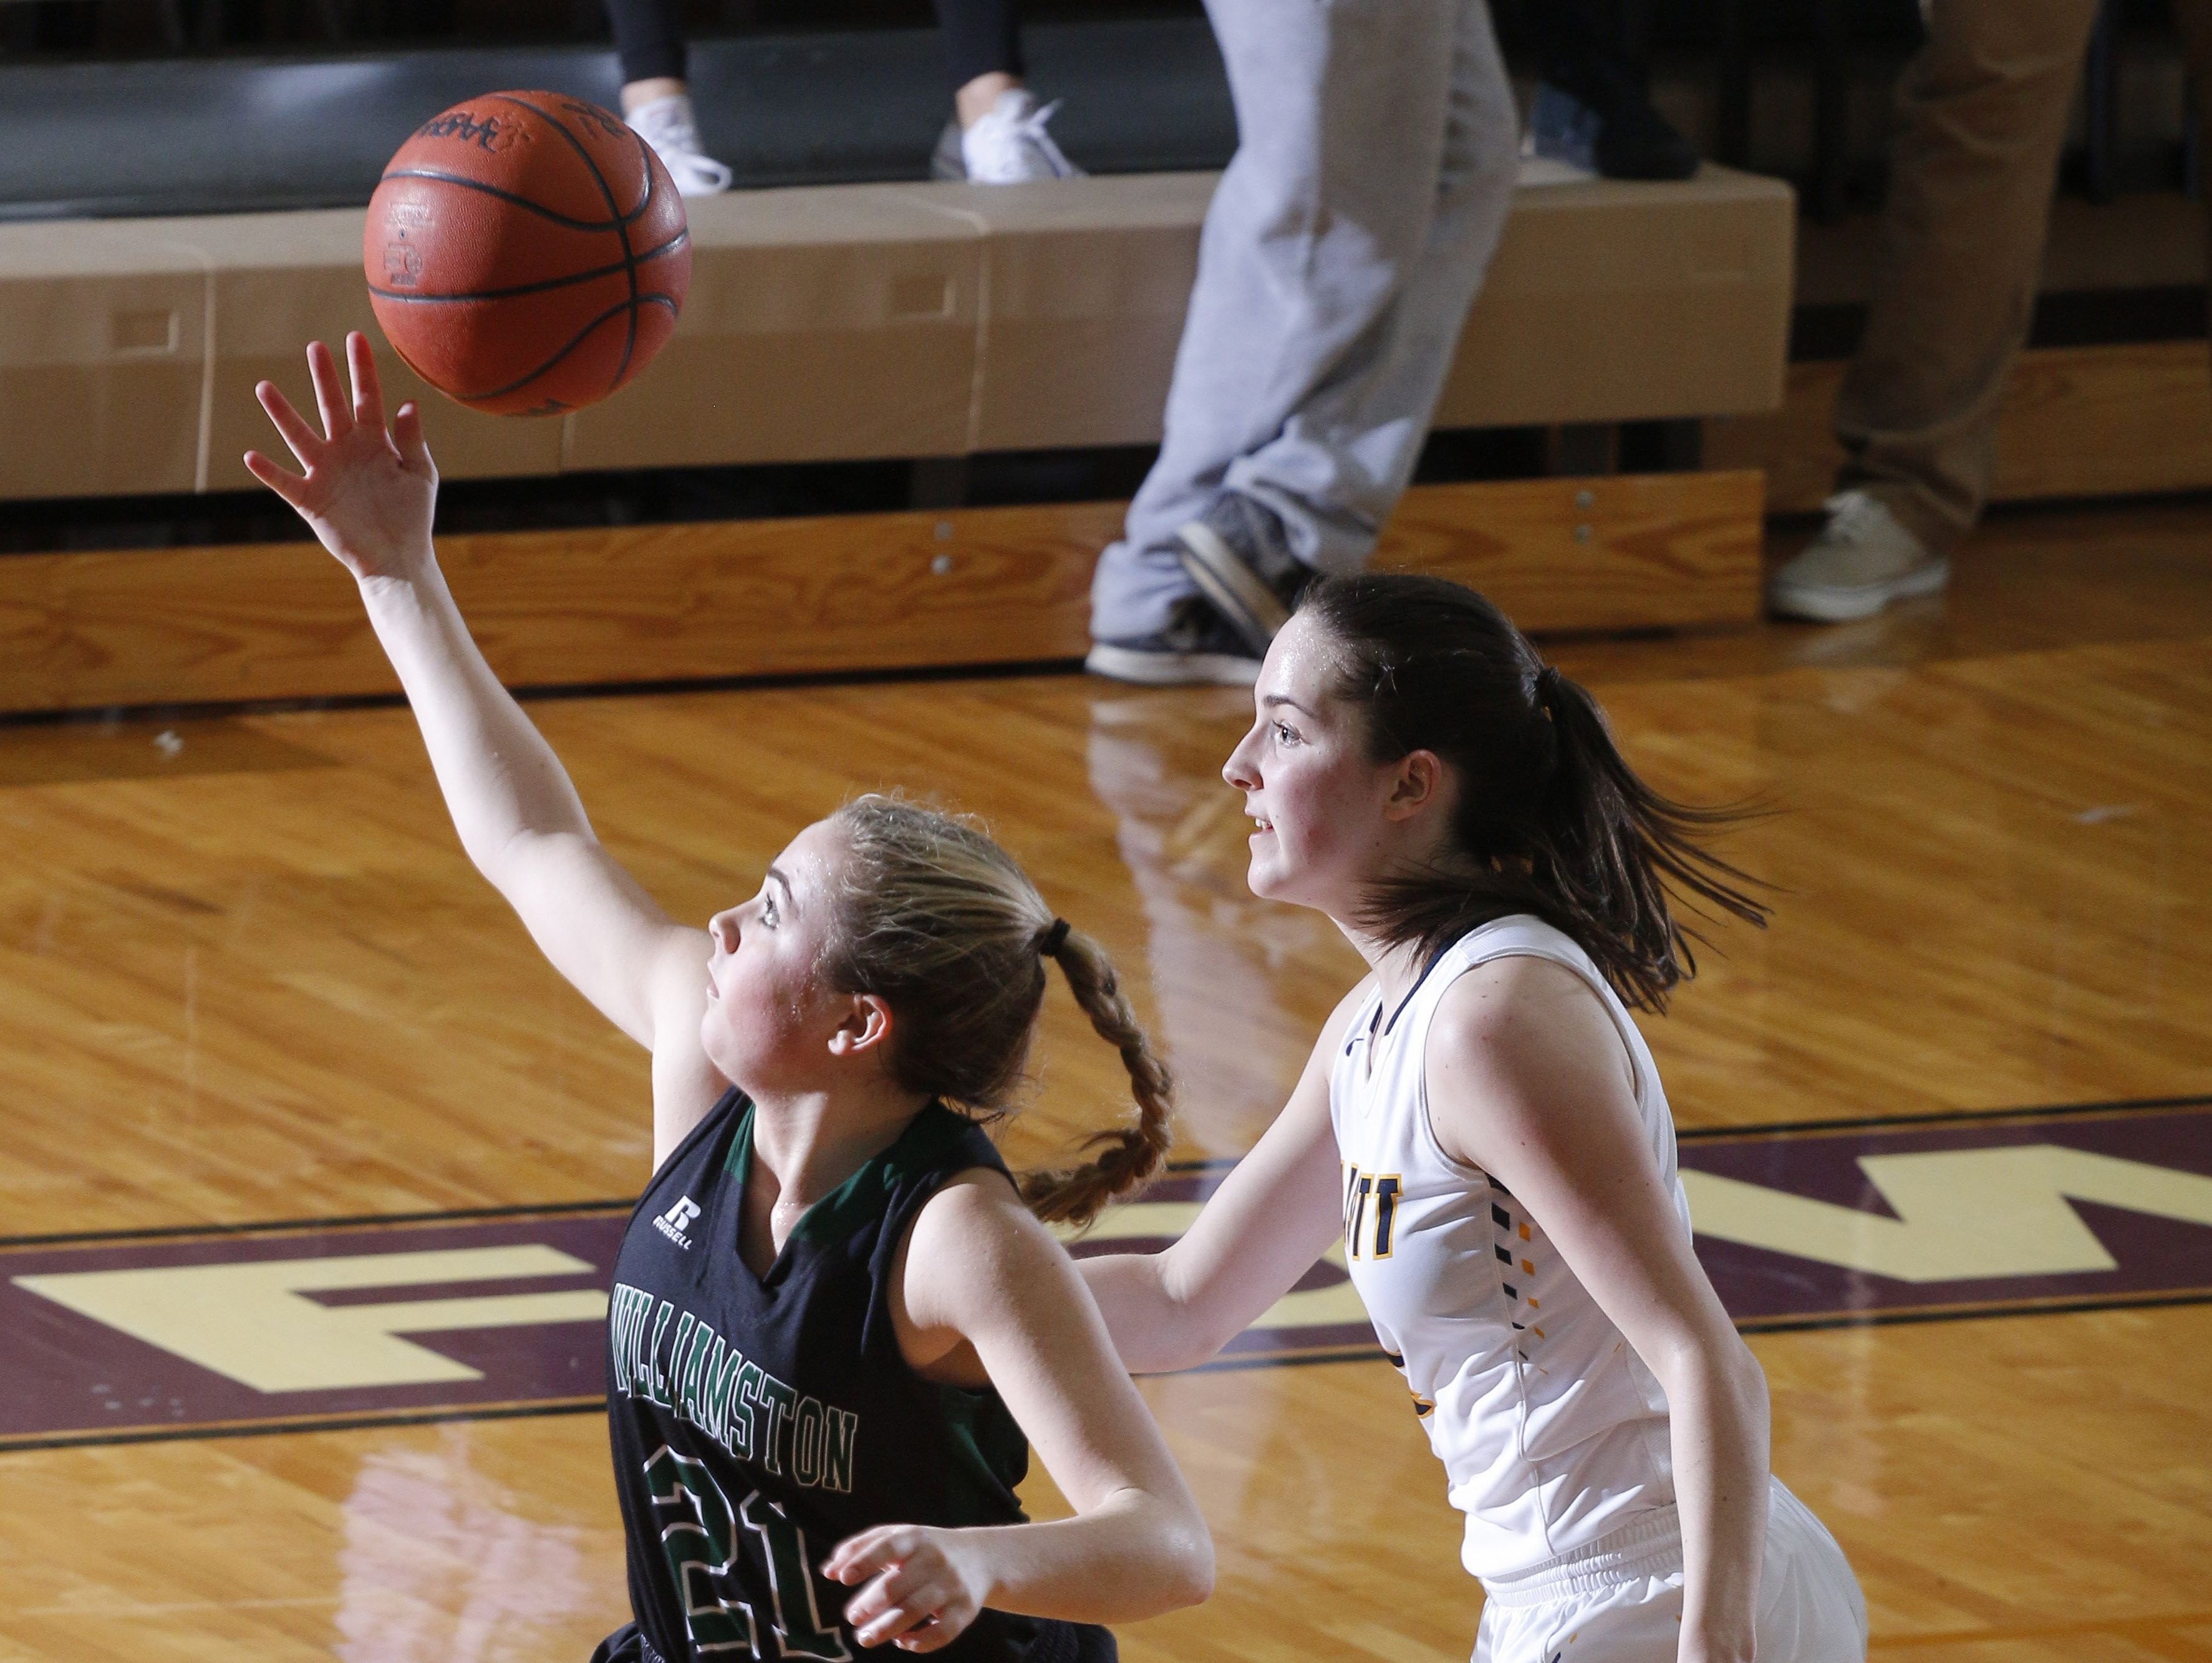 Williamston's Halle Wisbiski, left, reaches for a loose ball against Haslett's Ella McKinney during their district semifinal game Wednesday, March 1, 2017, in Fowlerville, Mich. Williamston won 53-42.